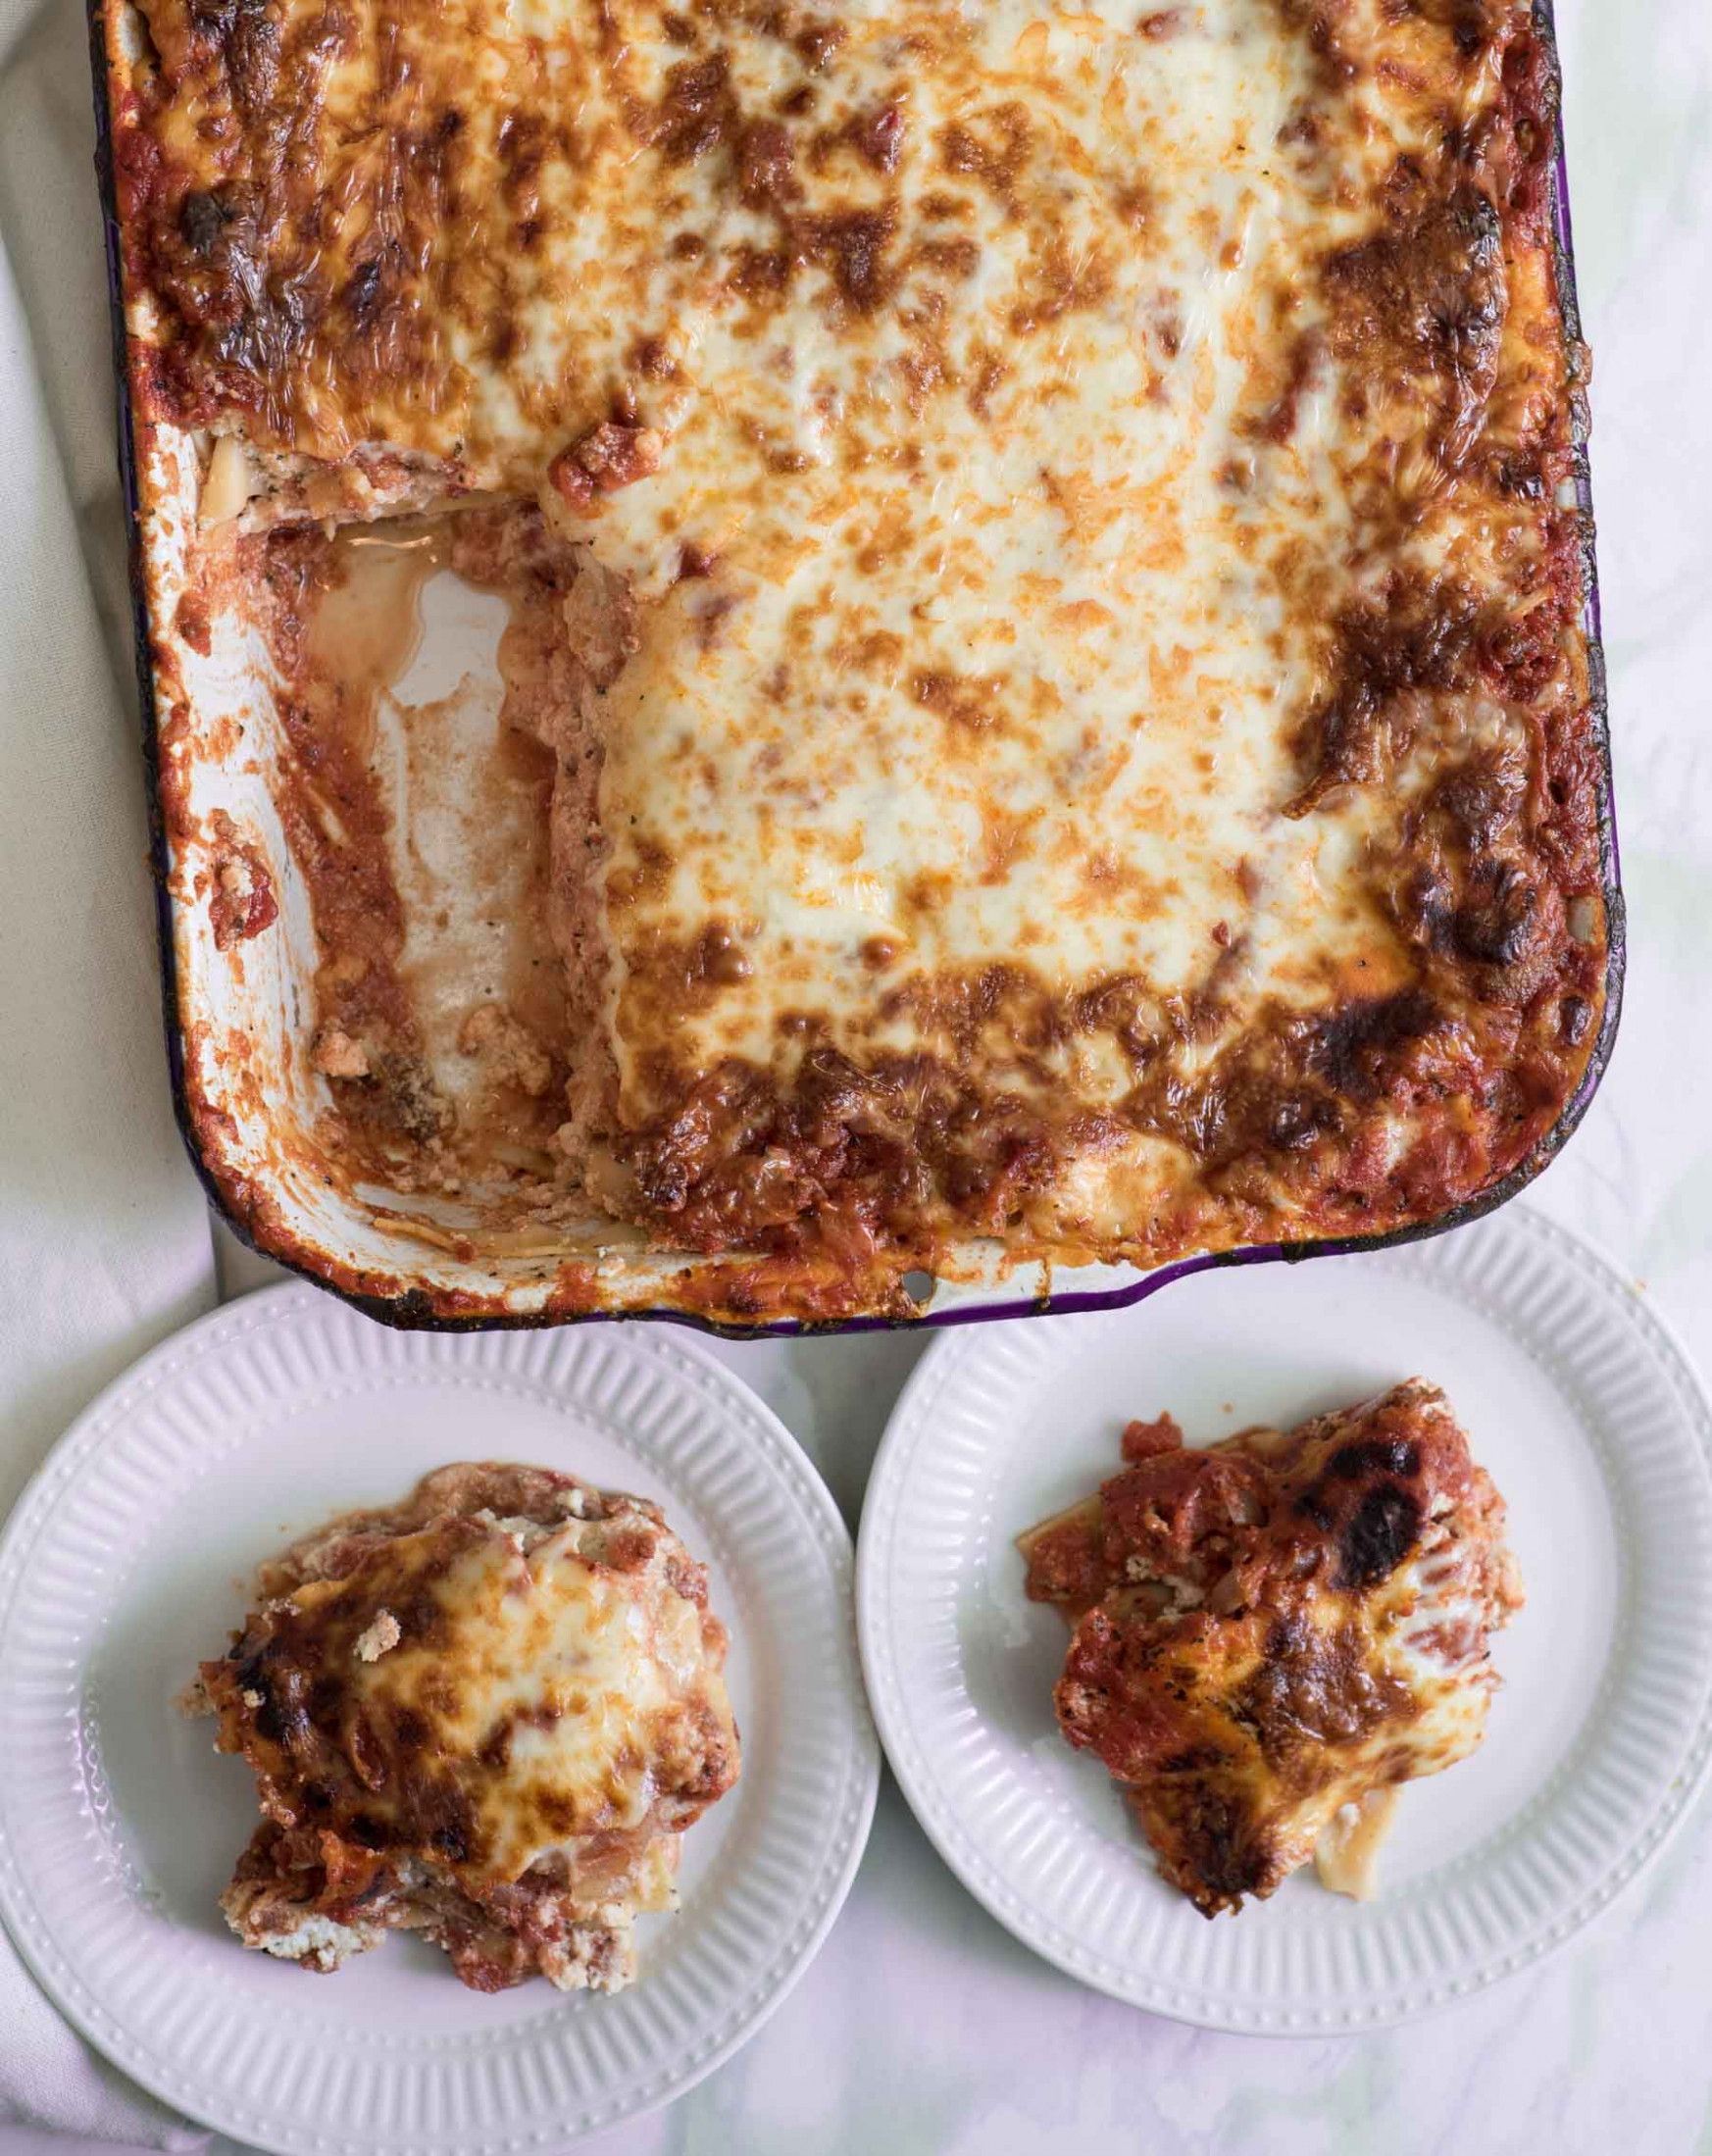 The Best Make-Ahead Lasagna | Easy Lasagna Recipe - dinner recipes you can prepare in advance